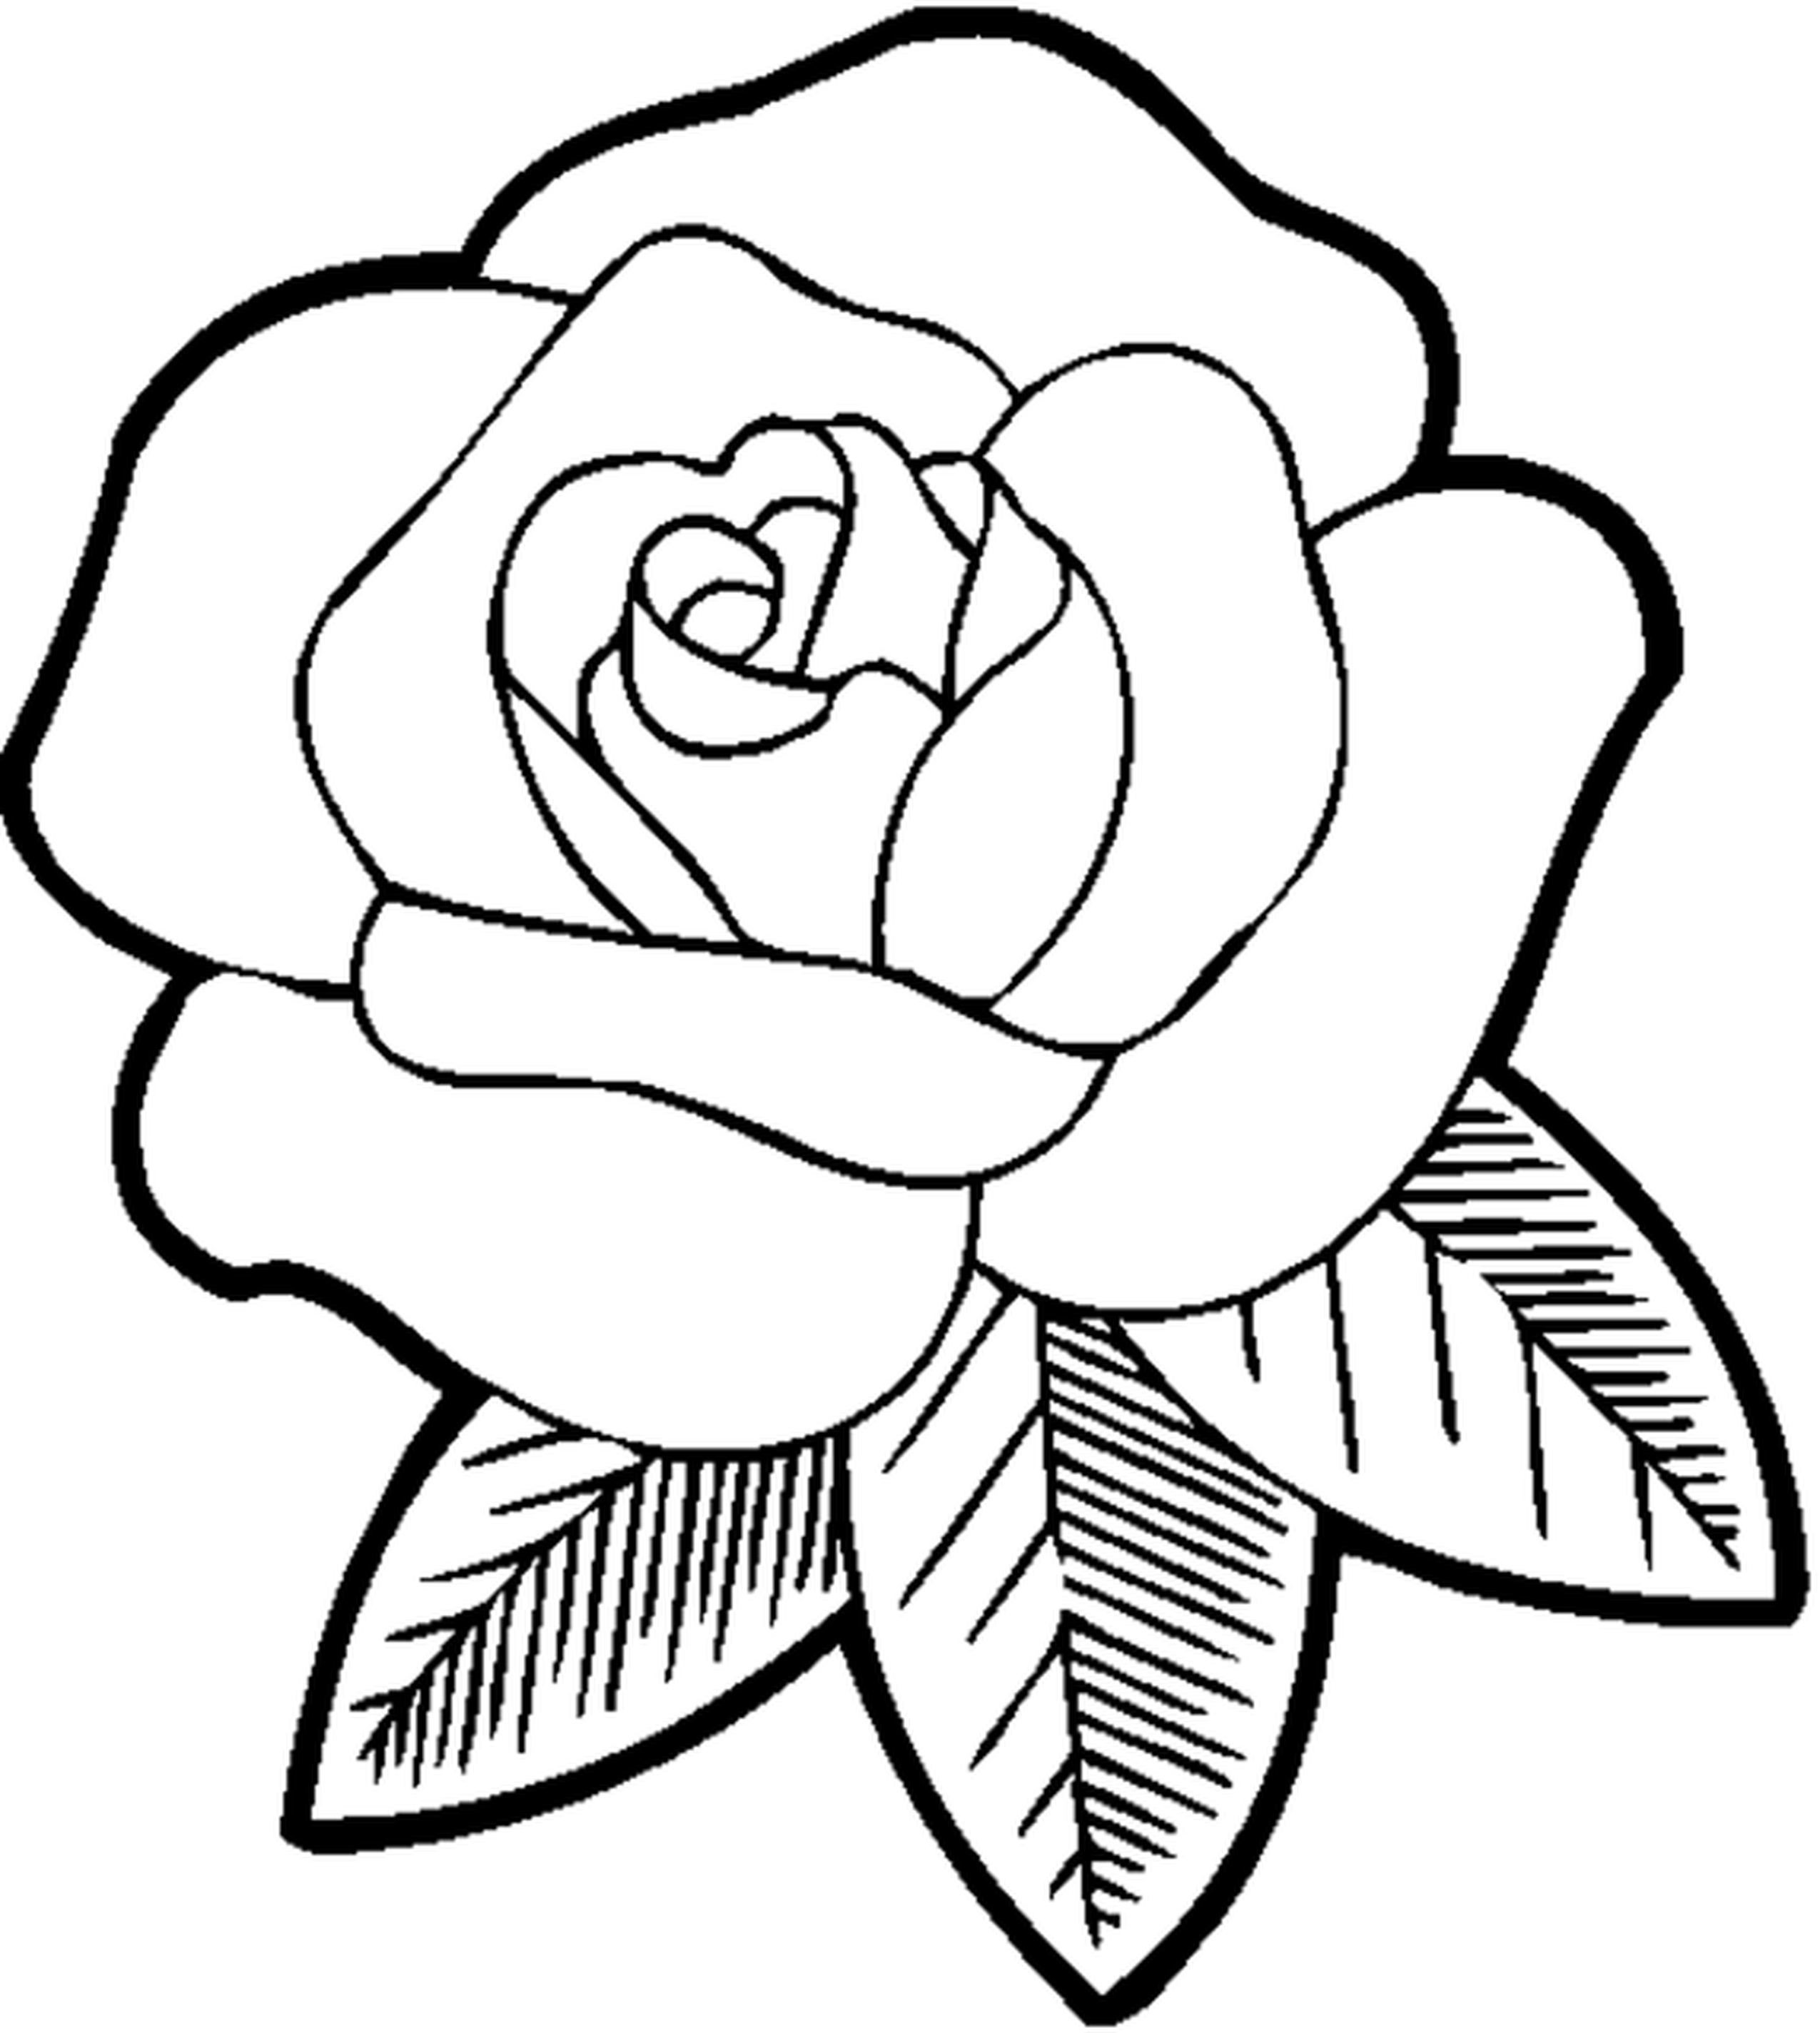 Best ideas about Coloring Pages For Girls Easy . Save or Pin Flower Coloring Pages For Teens Coloring Home Now.